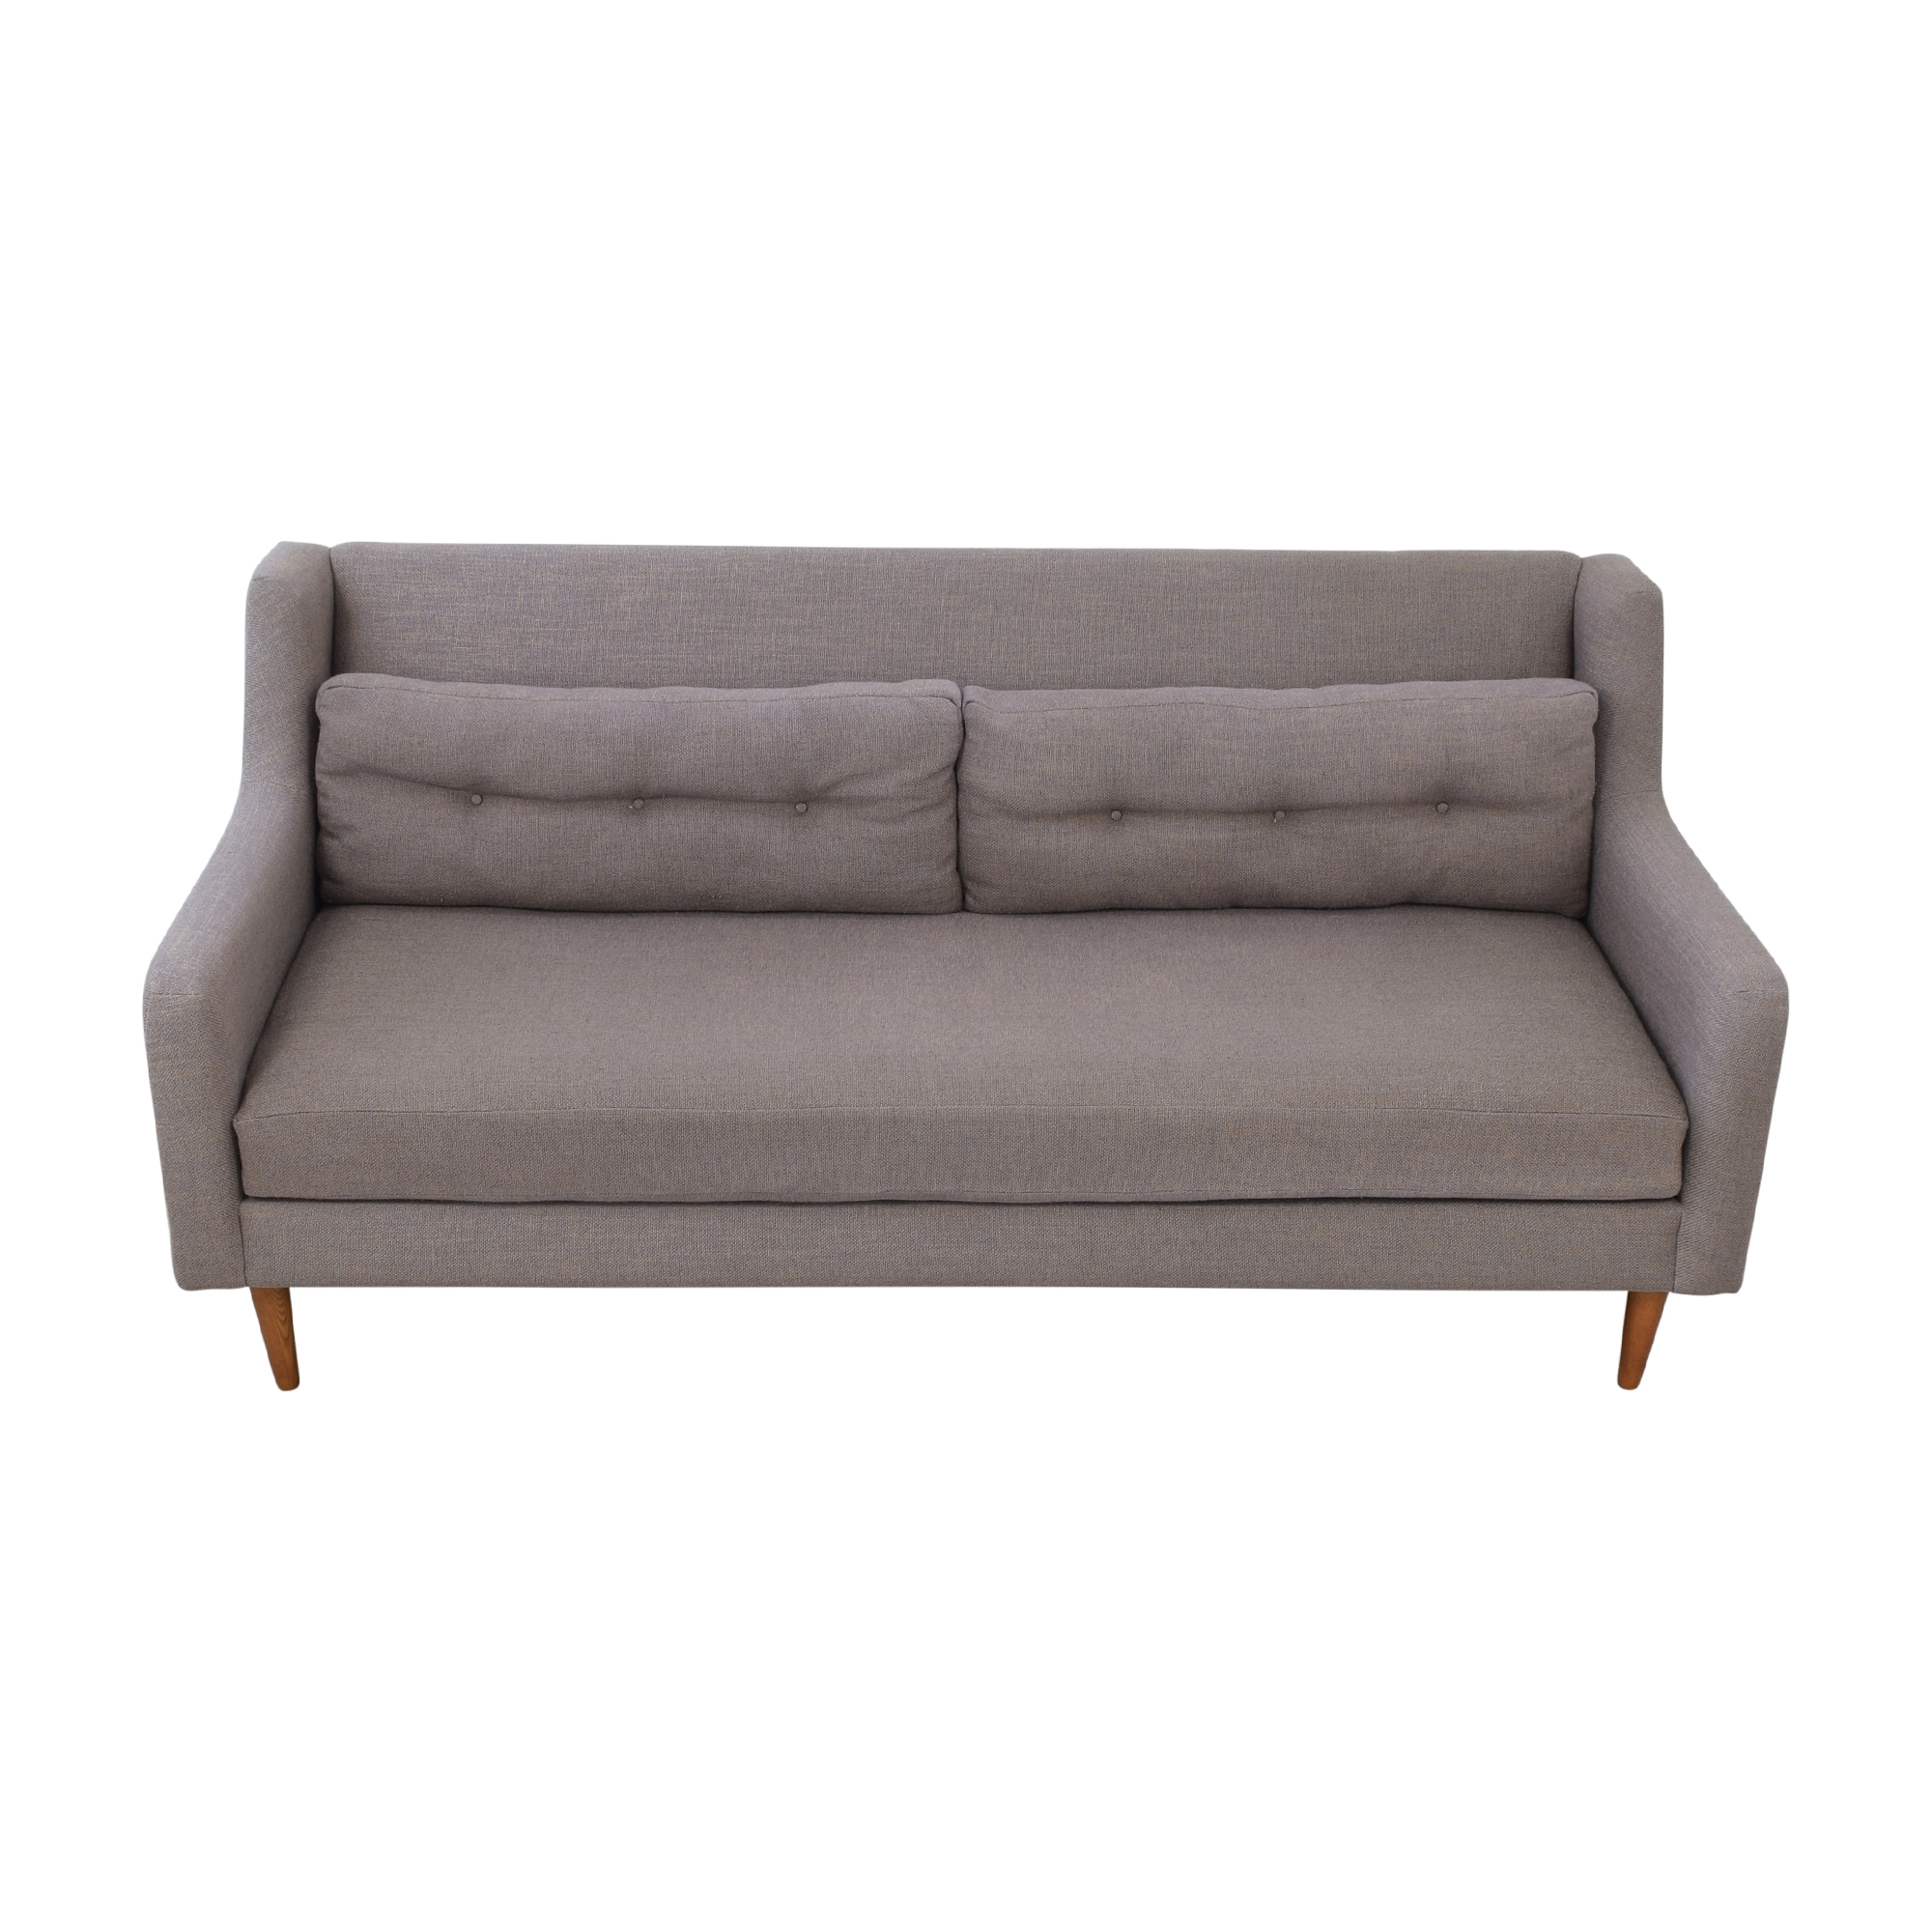 West Elm West Elm Crosby Sofa second hand